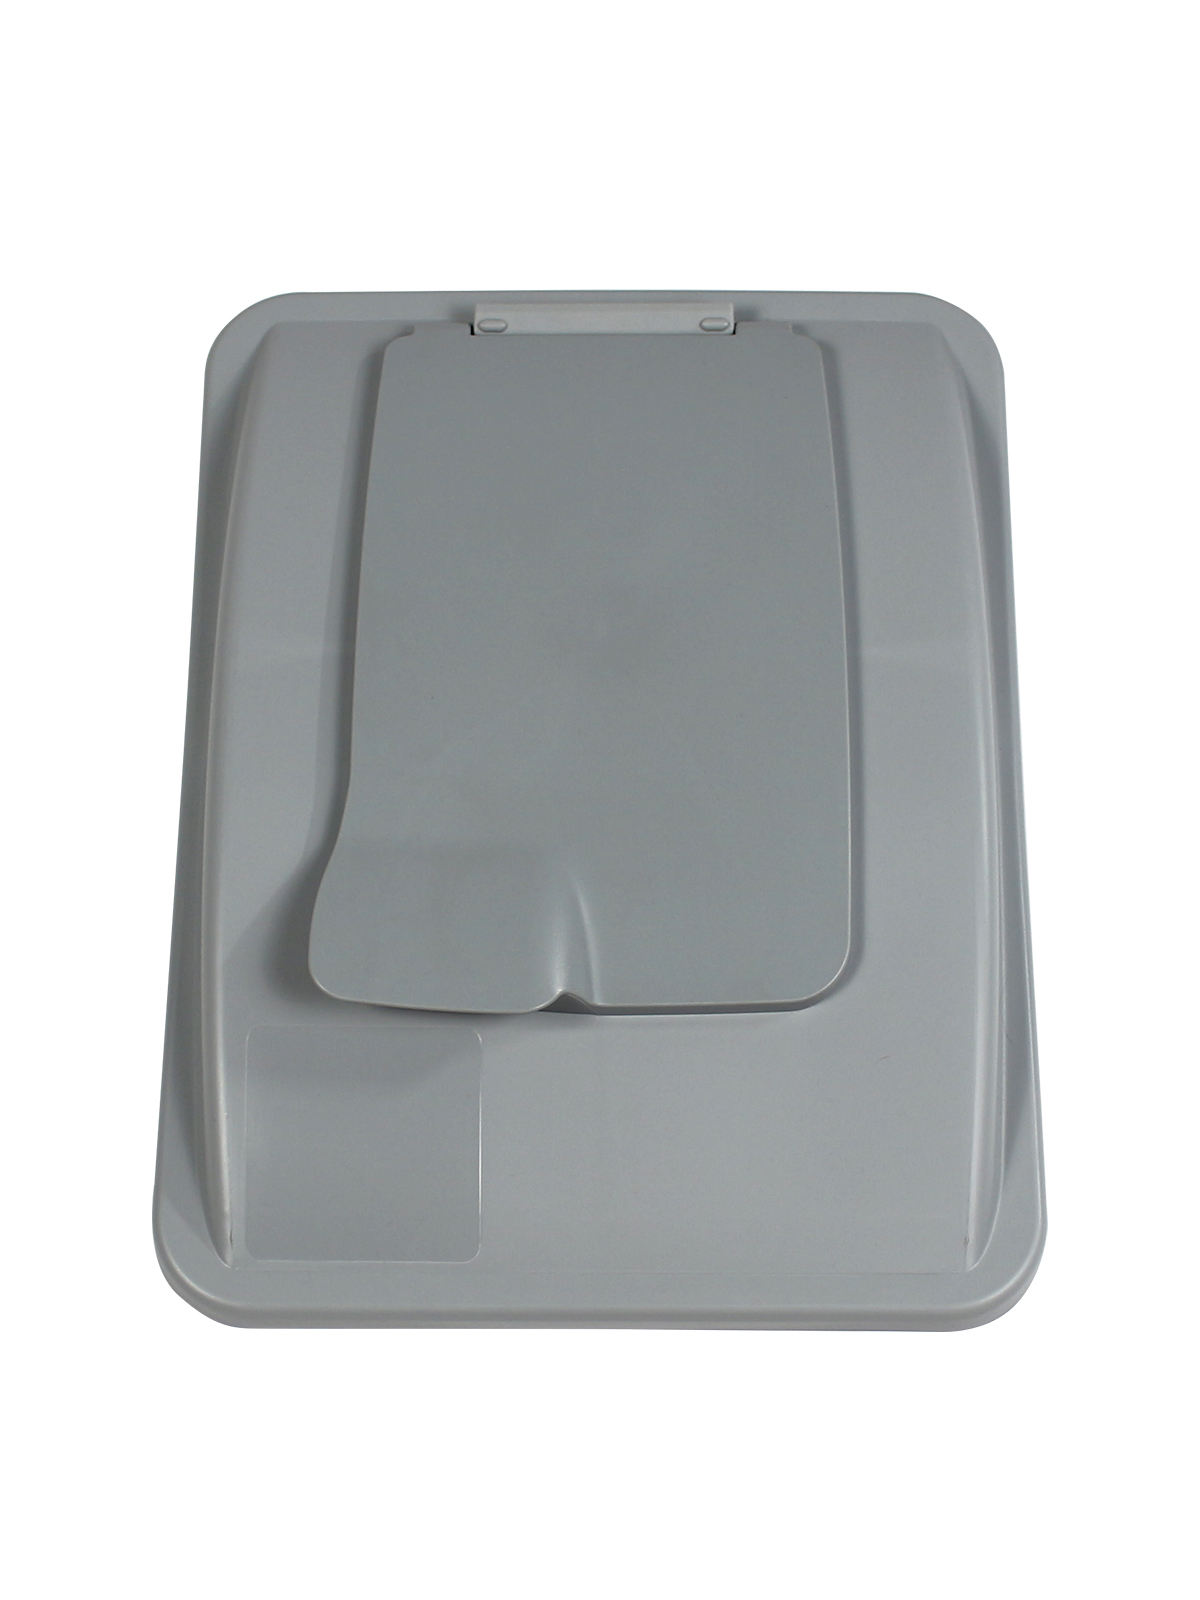 WASTE WATCHER XL - Lid - Solid Lift - Executive Grey